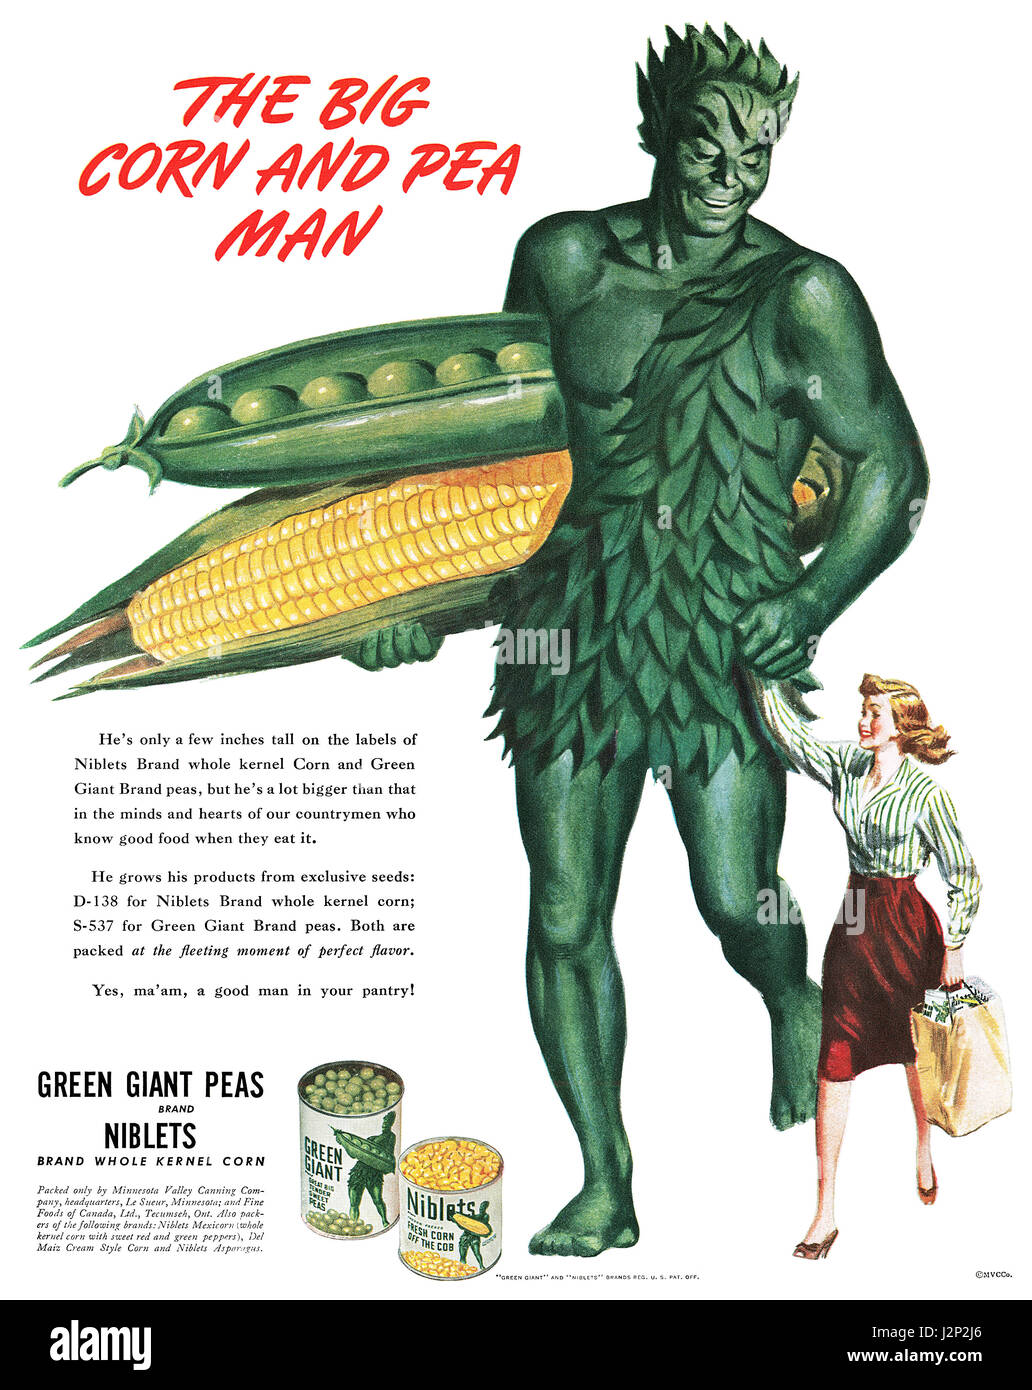 1945 U.S. advertisement for Green Giant Peas and Corn. - Stock Image